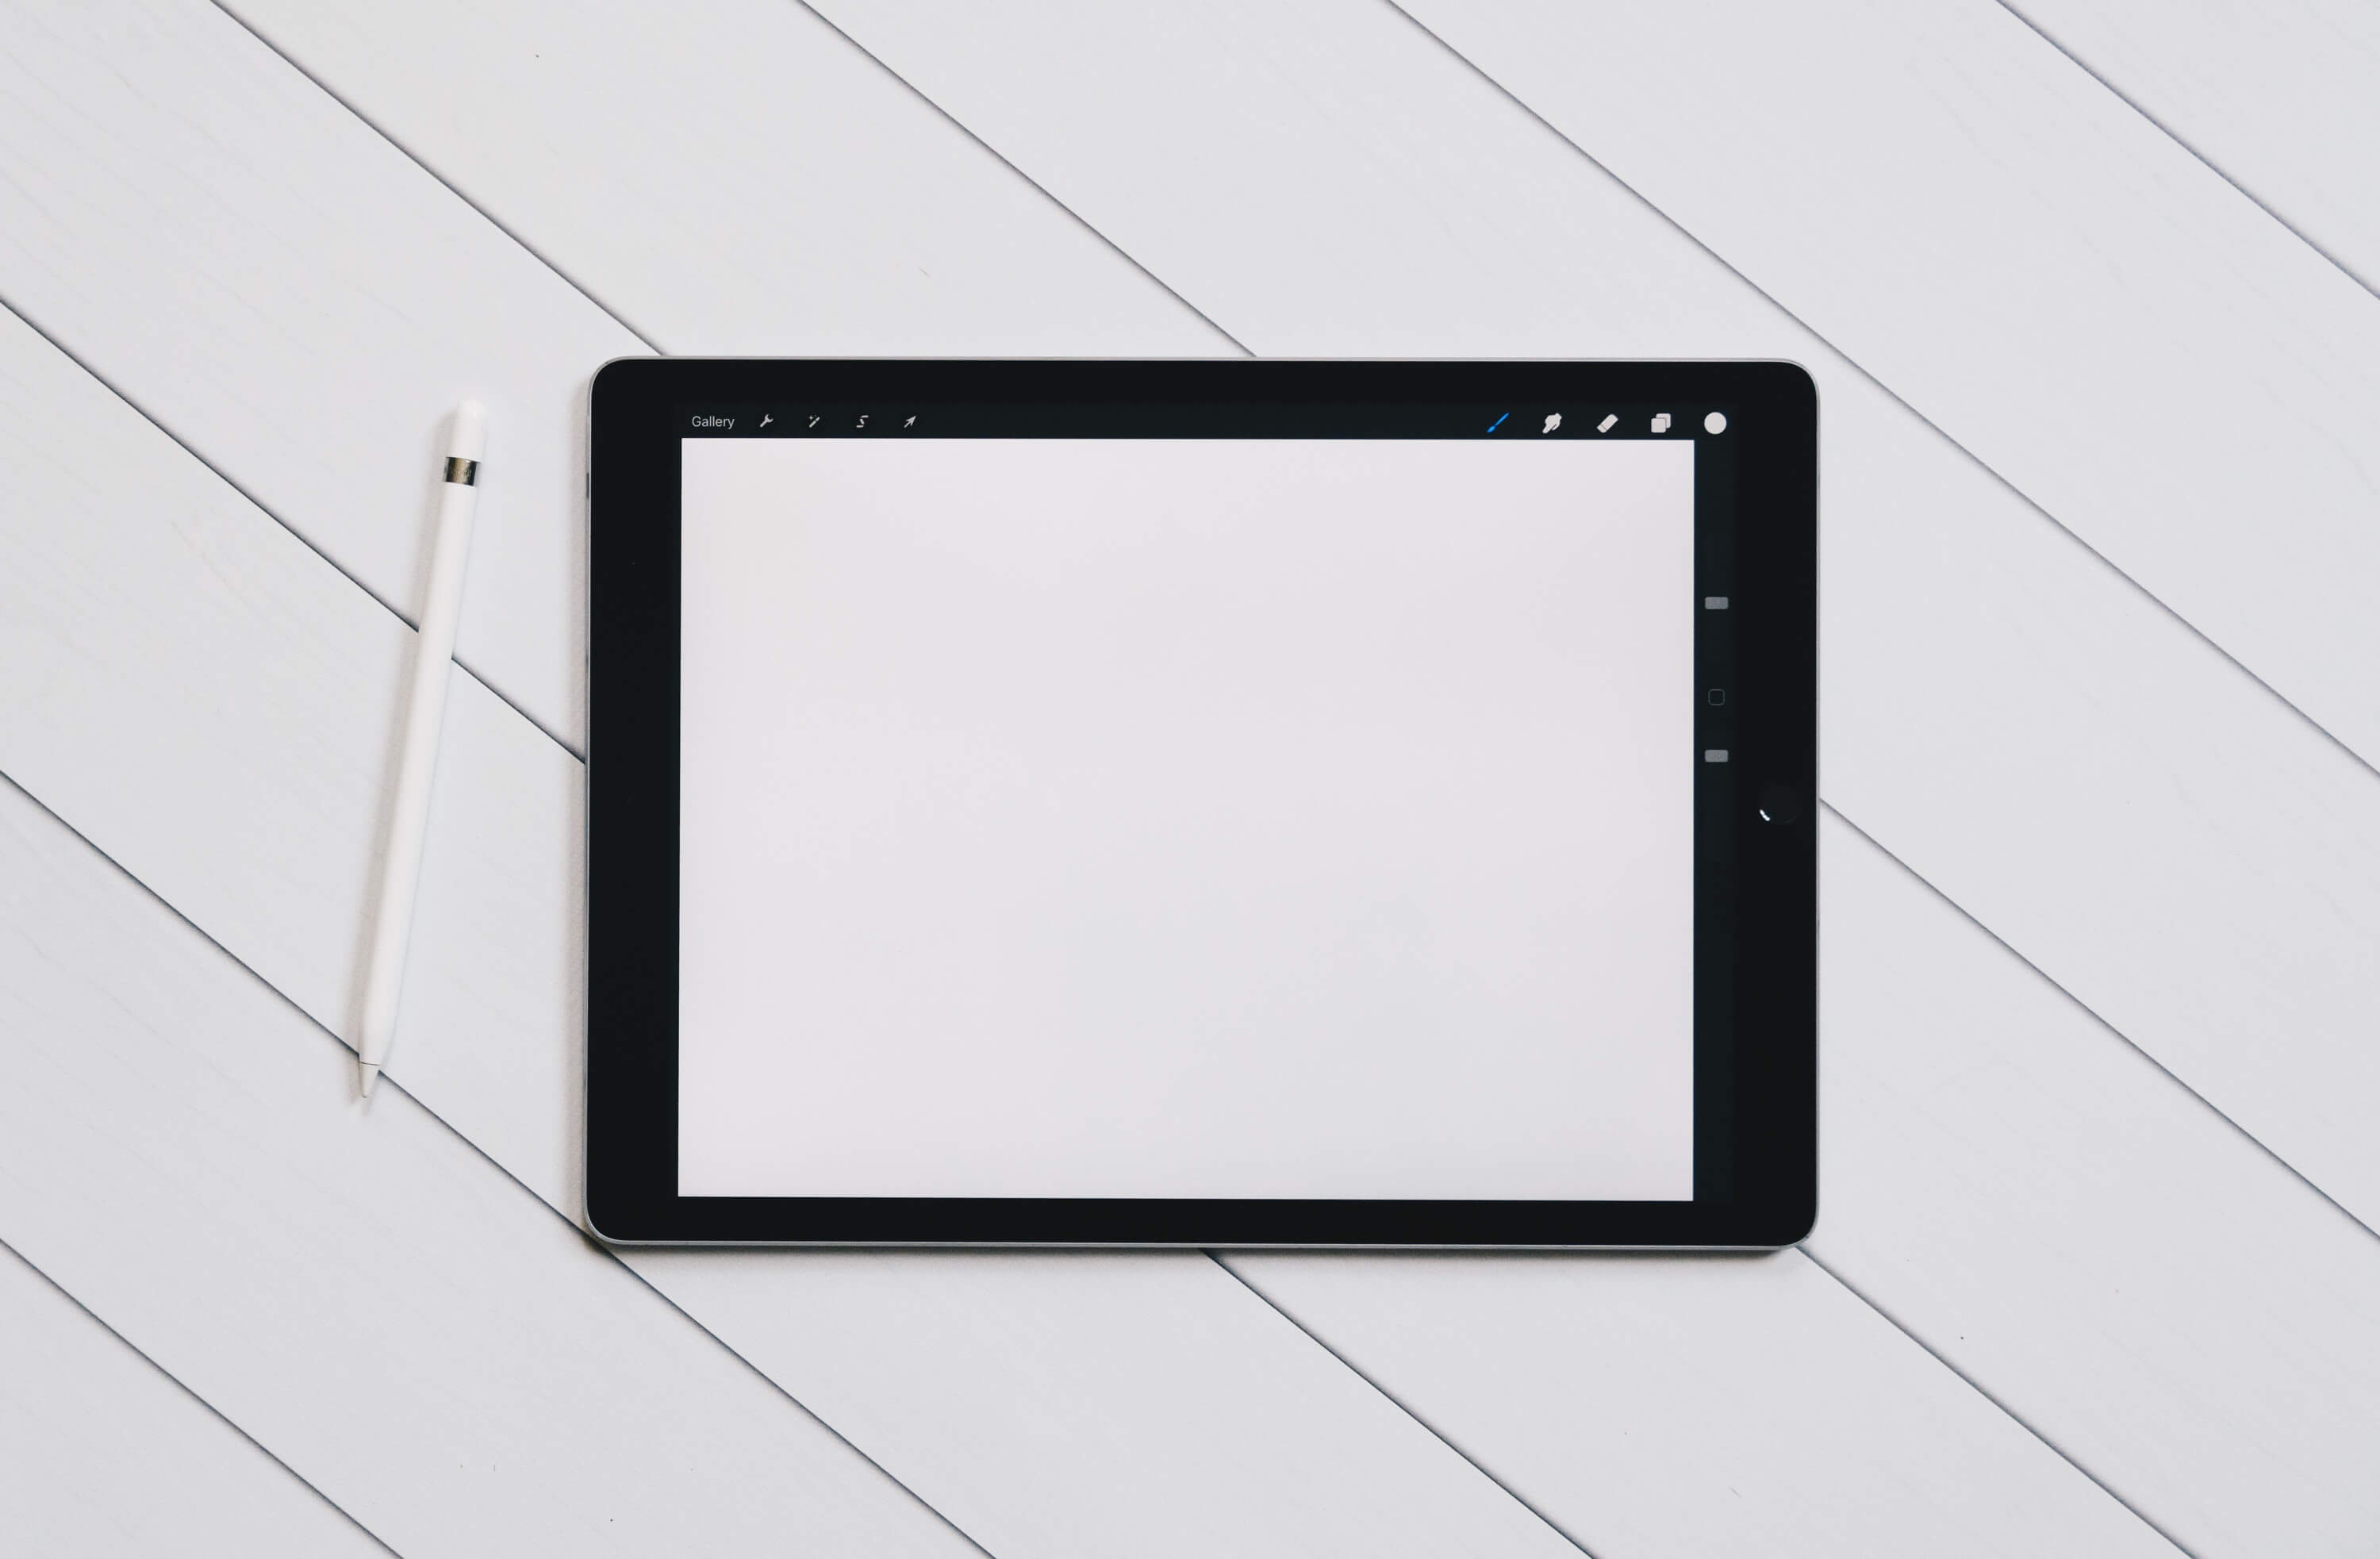 Tablet on white surface